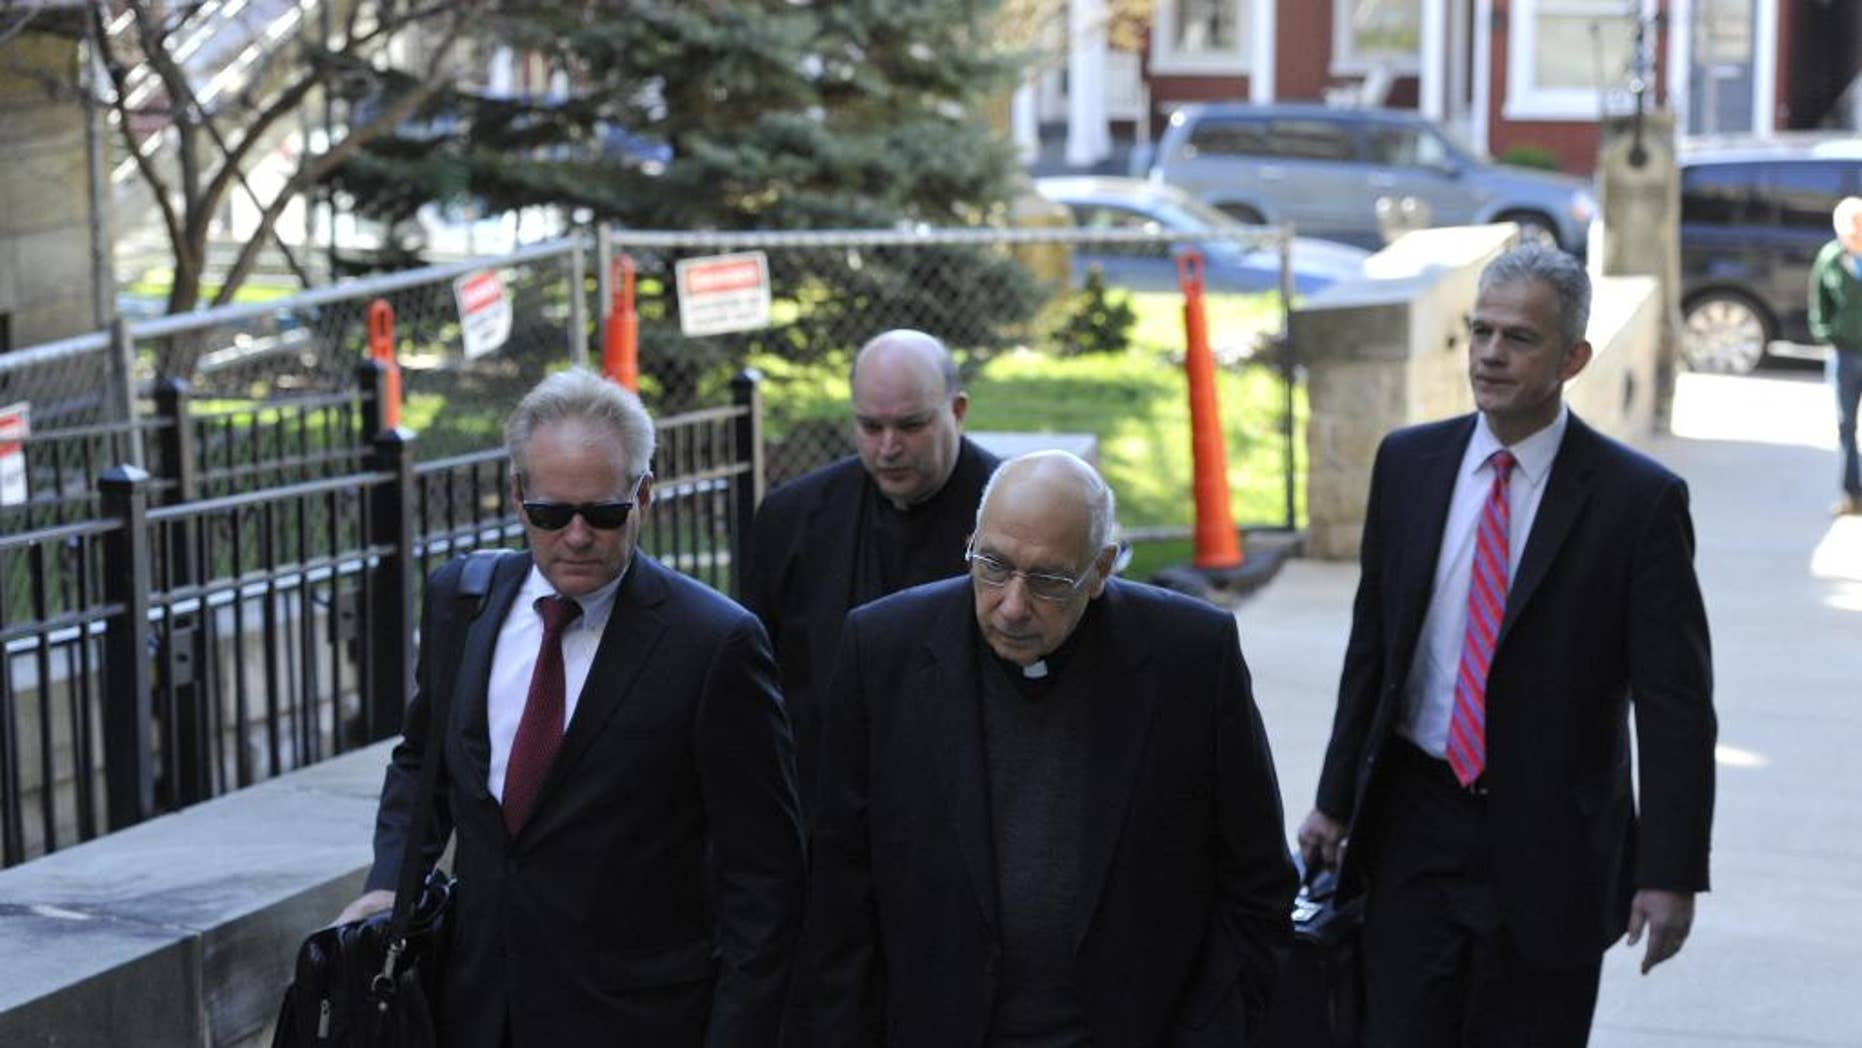 FILE - In this Thursday, April 14, 2016 file photo, attorneys lead Franciscans Giles Schinelli,  front, and Anthony Criscitelli to their hearing at the Blair County courthouse in Hollidaysburg, Pa. Testimony is set to resume in the case of three Franciscan friars charged with allowing a suspected sexual predator to teach at a Pennsylvania high school and hold other jobs where he molested more than 100 children. A preliminary hearing on Wednesday, April 27, 2016, will determine whether Schinelli, Robert D'Aversa and Criscitelli will stand trial on child endangerment and conspiracy charges.  (Todd Berkey/The Tribune-Democrat via AP, File) MANDATORY CREDIT